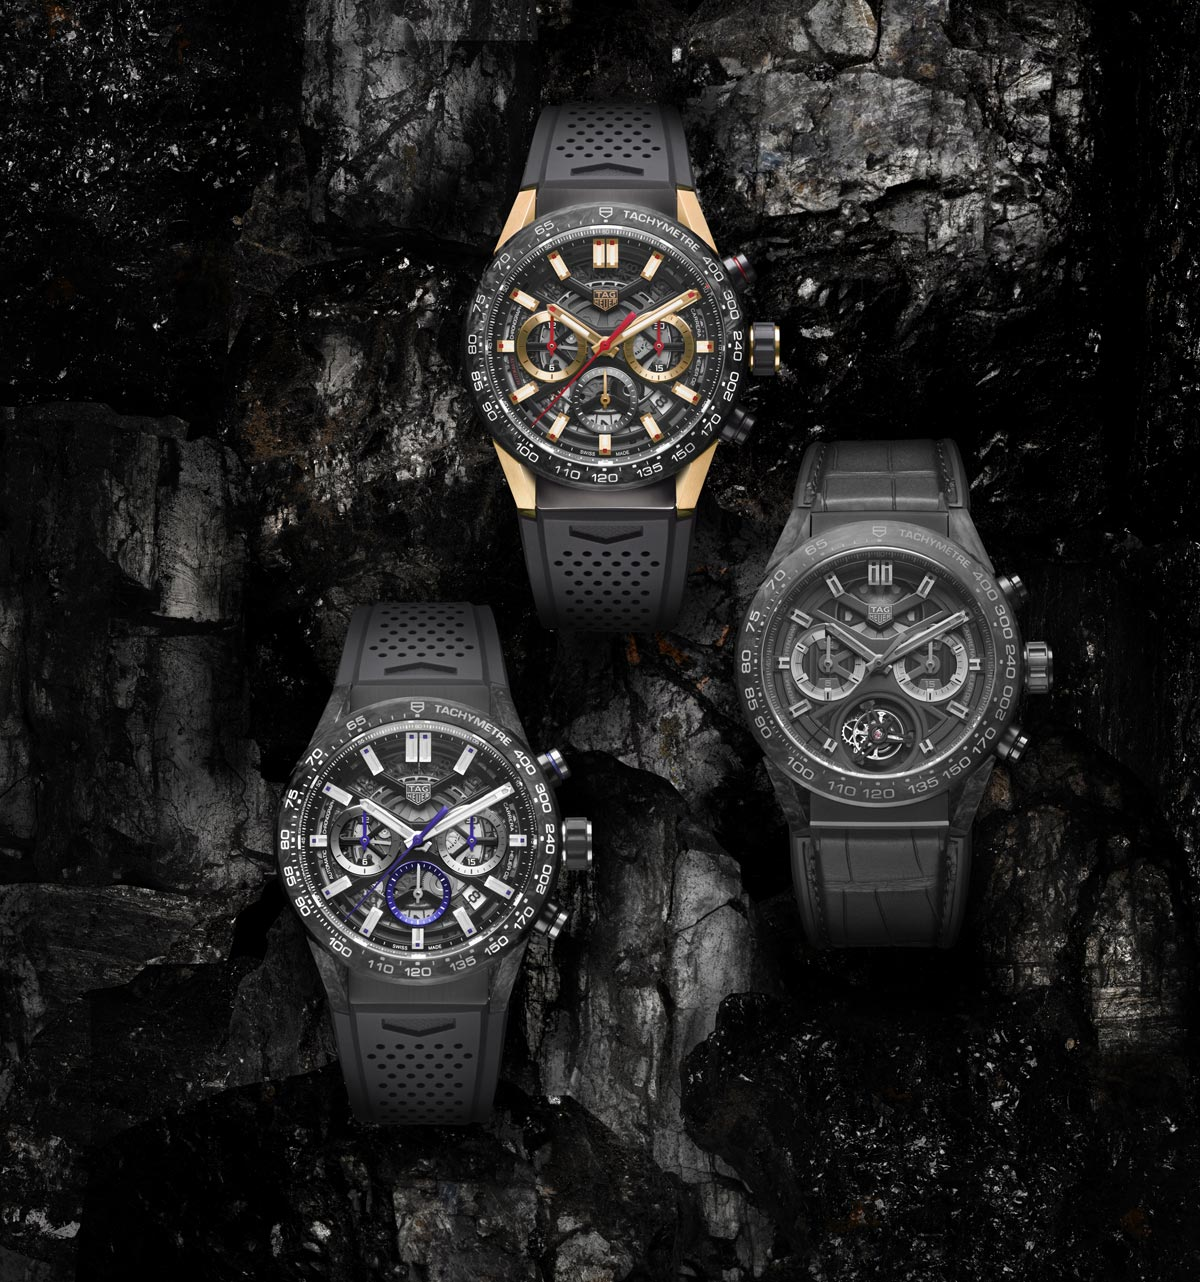 9ba0c2ba7e5 Avant-garde watchmaking meets innovative material  TAG Heuer introduces  three new Carrera timepieces all crafted in carbon. These three  limited-edition ...